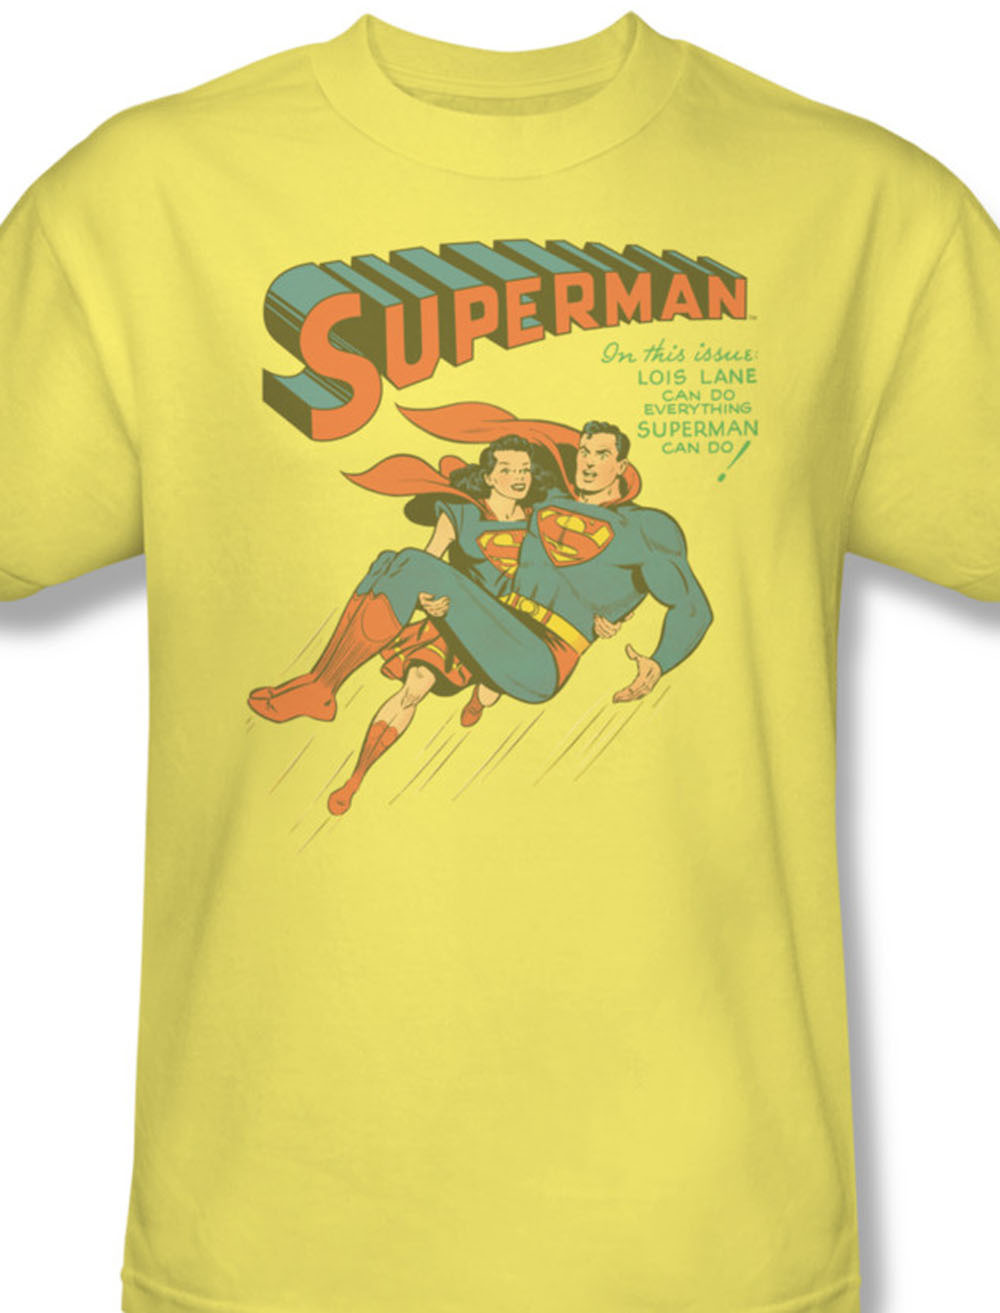 at superman lois lane dc comics vintage tee action comics graphic yellow tshirt for sale online